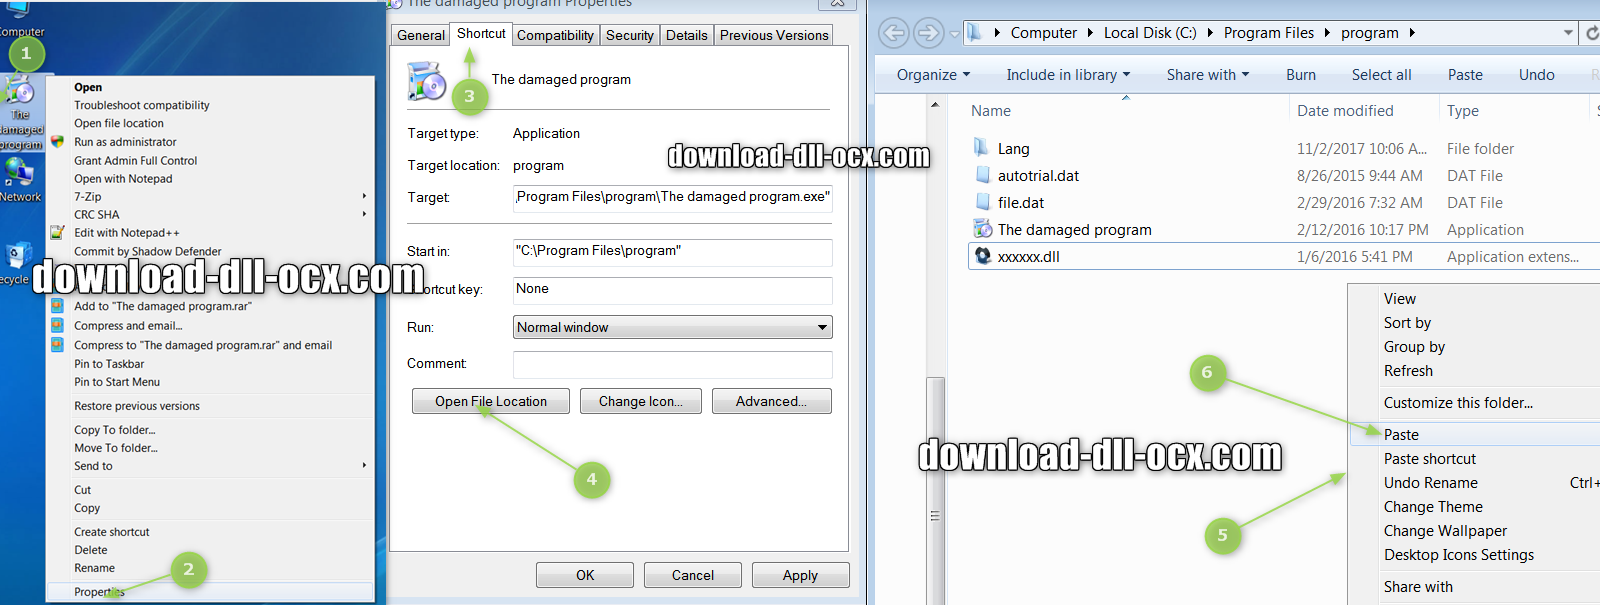 how to install Libpixbufloader-bmp.dll file? for fix missing